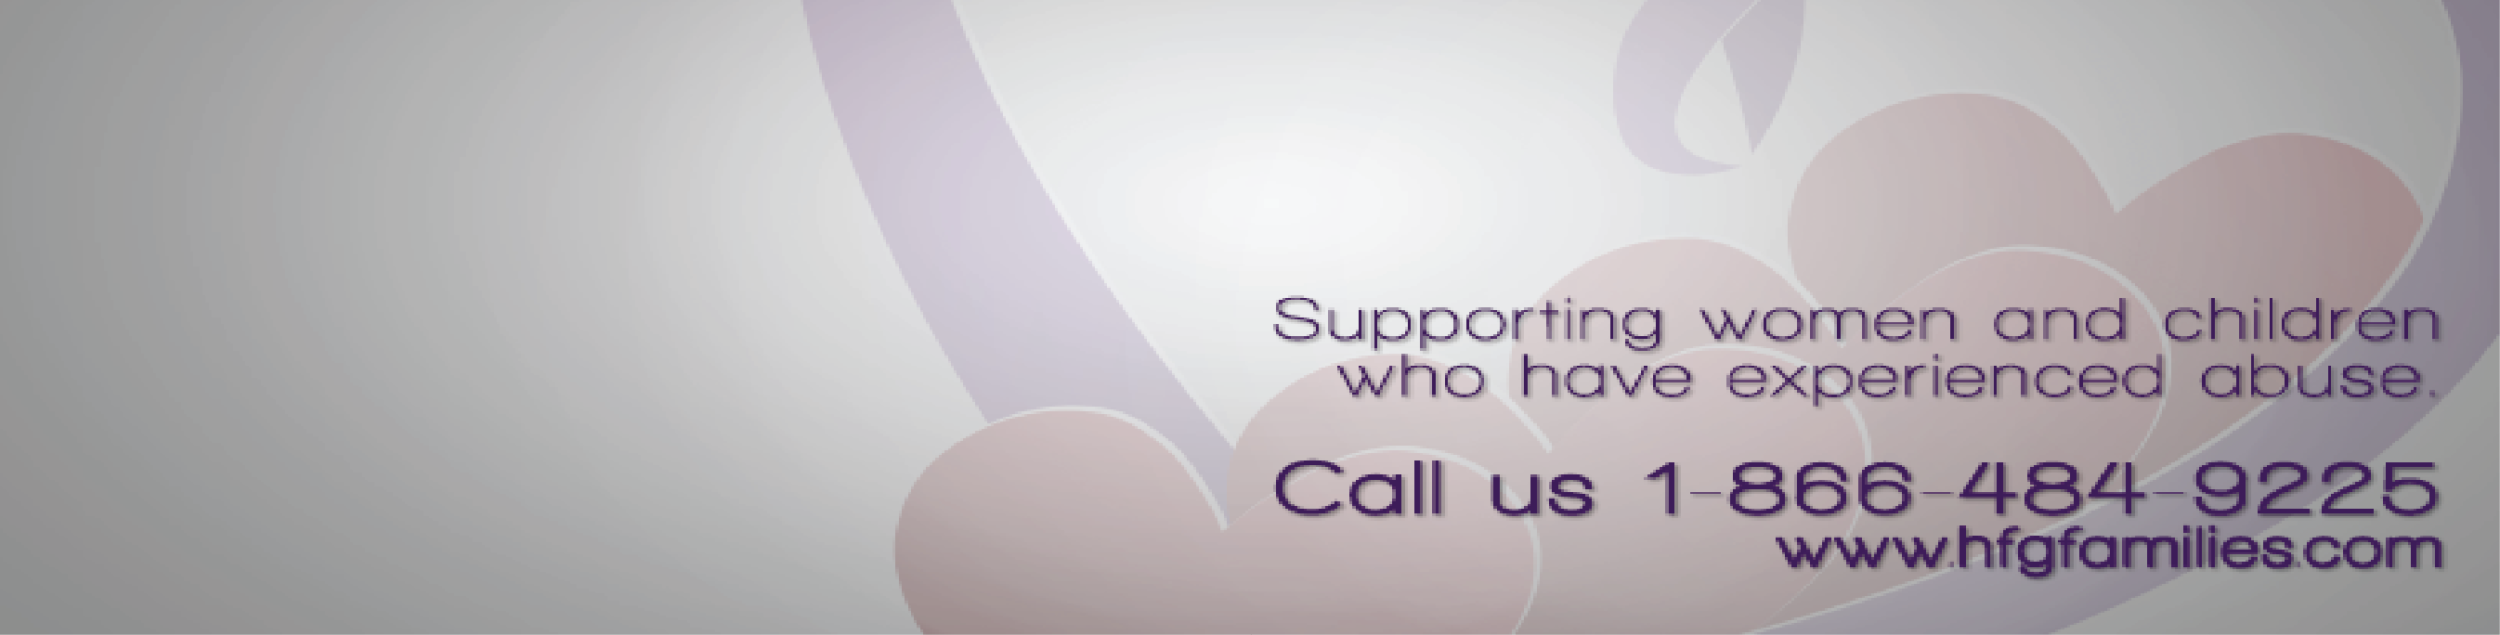 HFG Happy Families Support Network Inc.